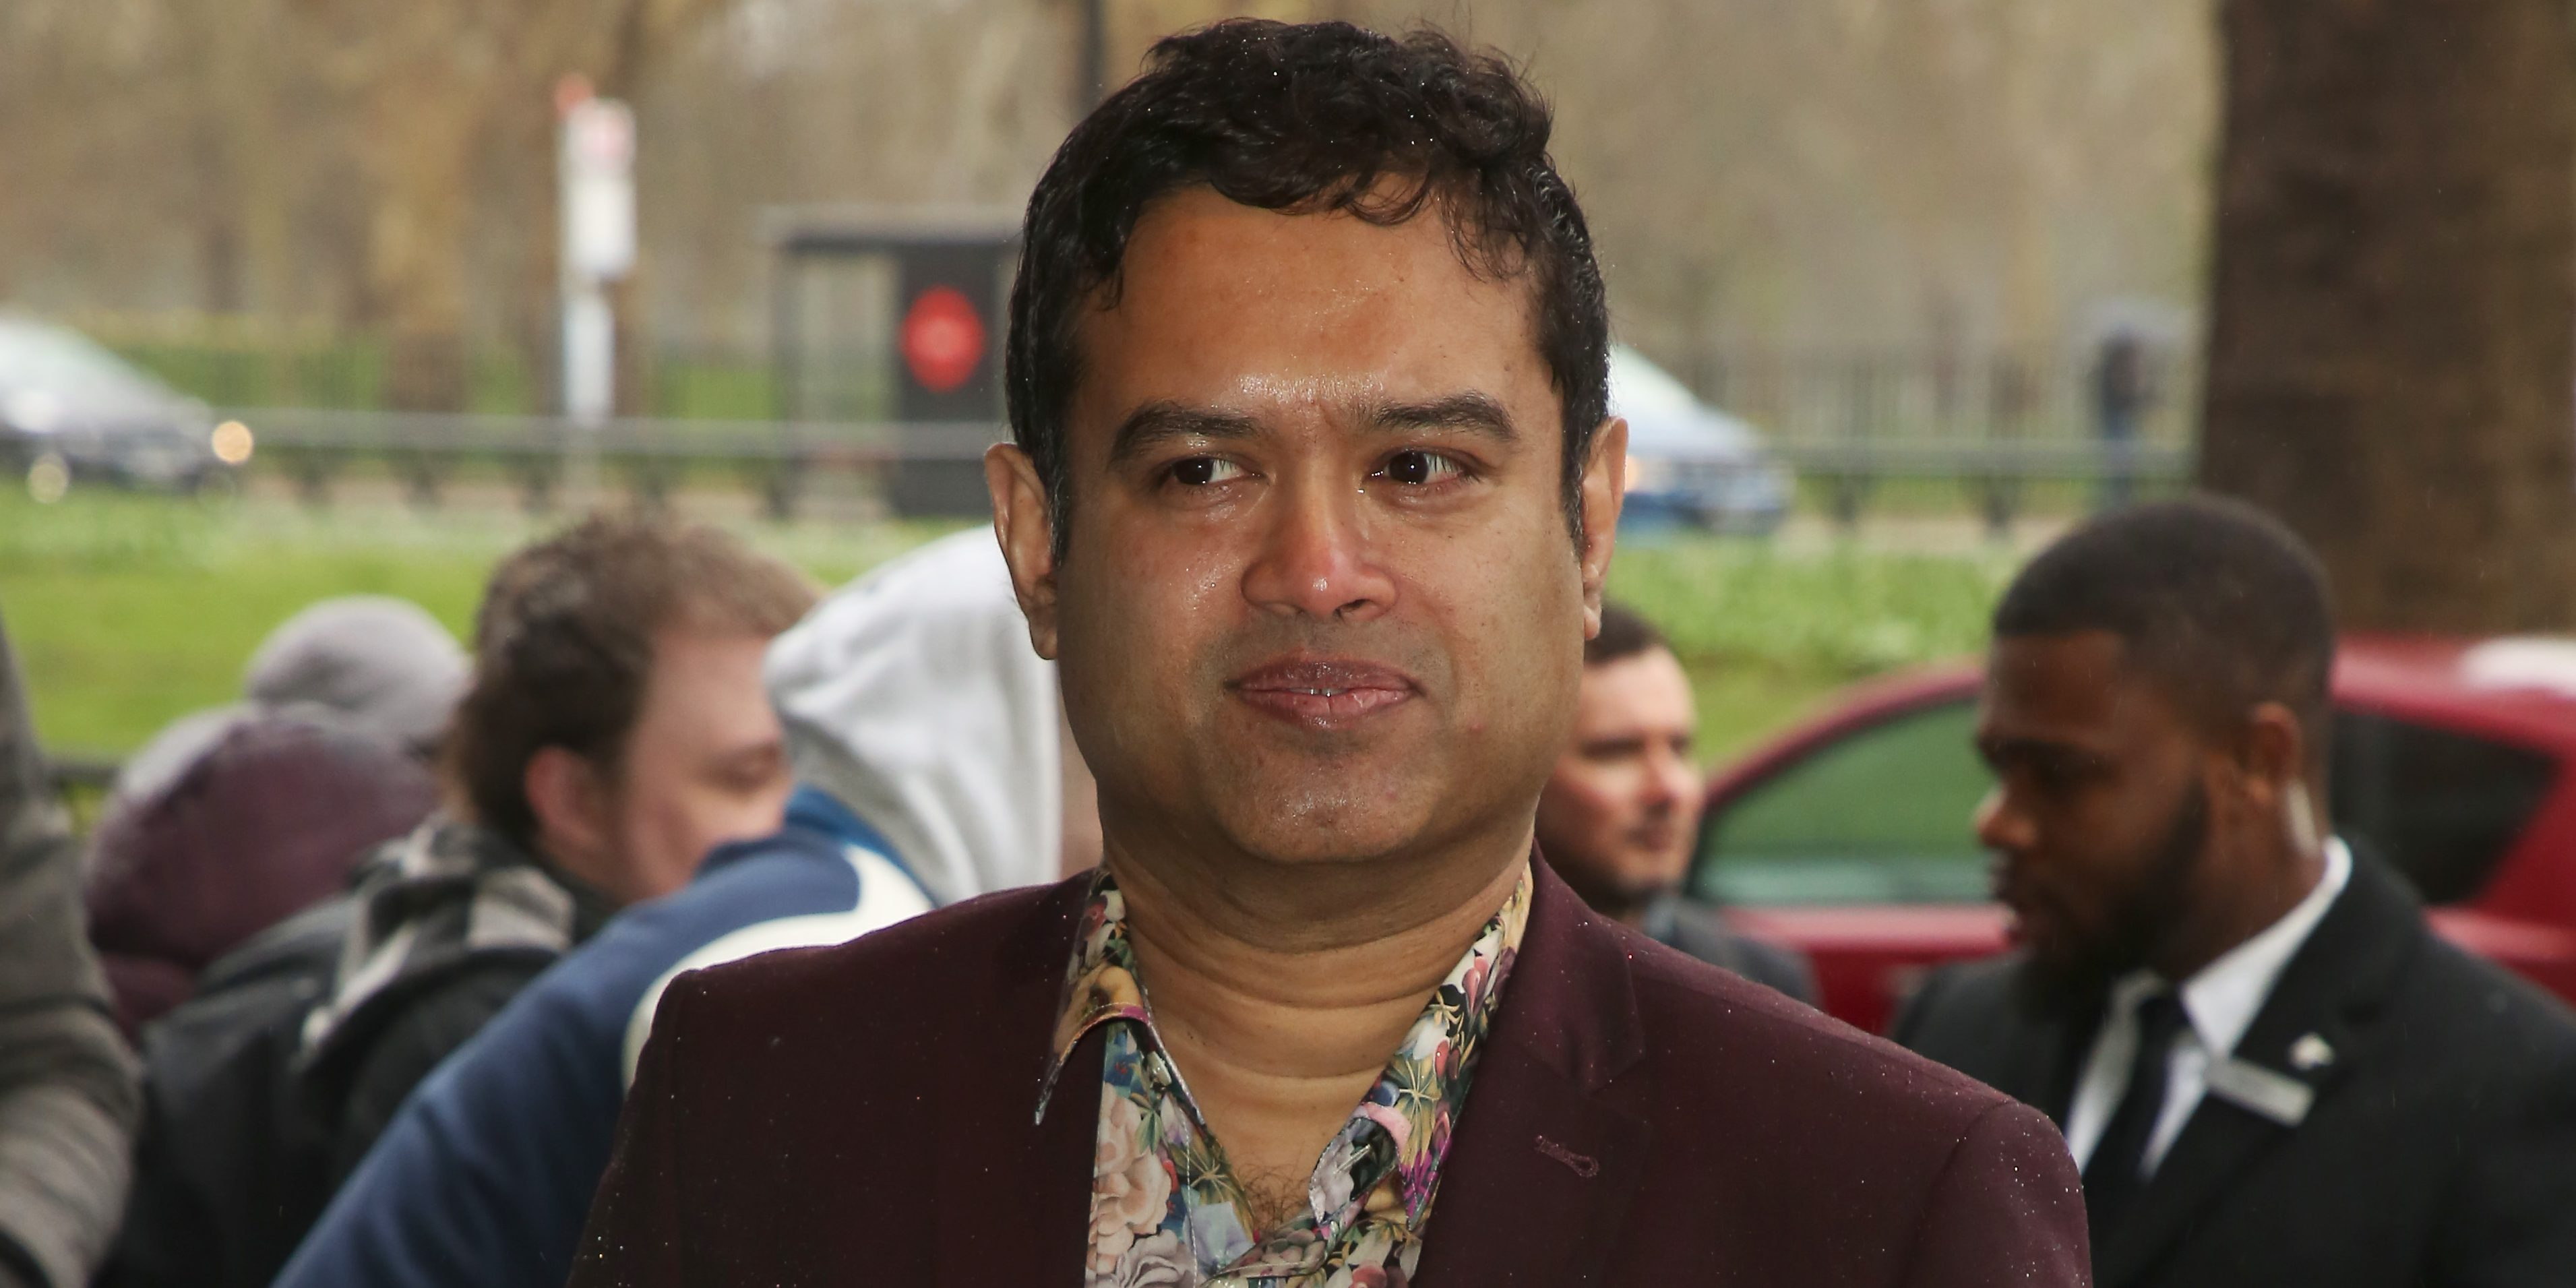 The Chase's Paul Sinha is using Parkinson's battle for comedy material